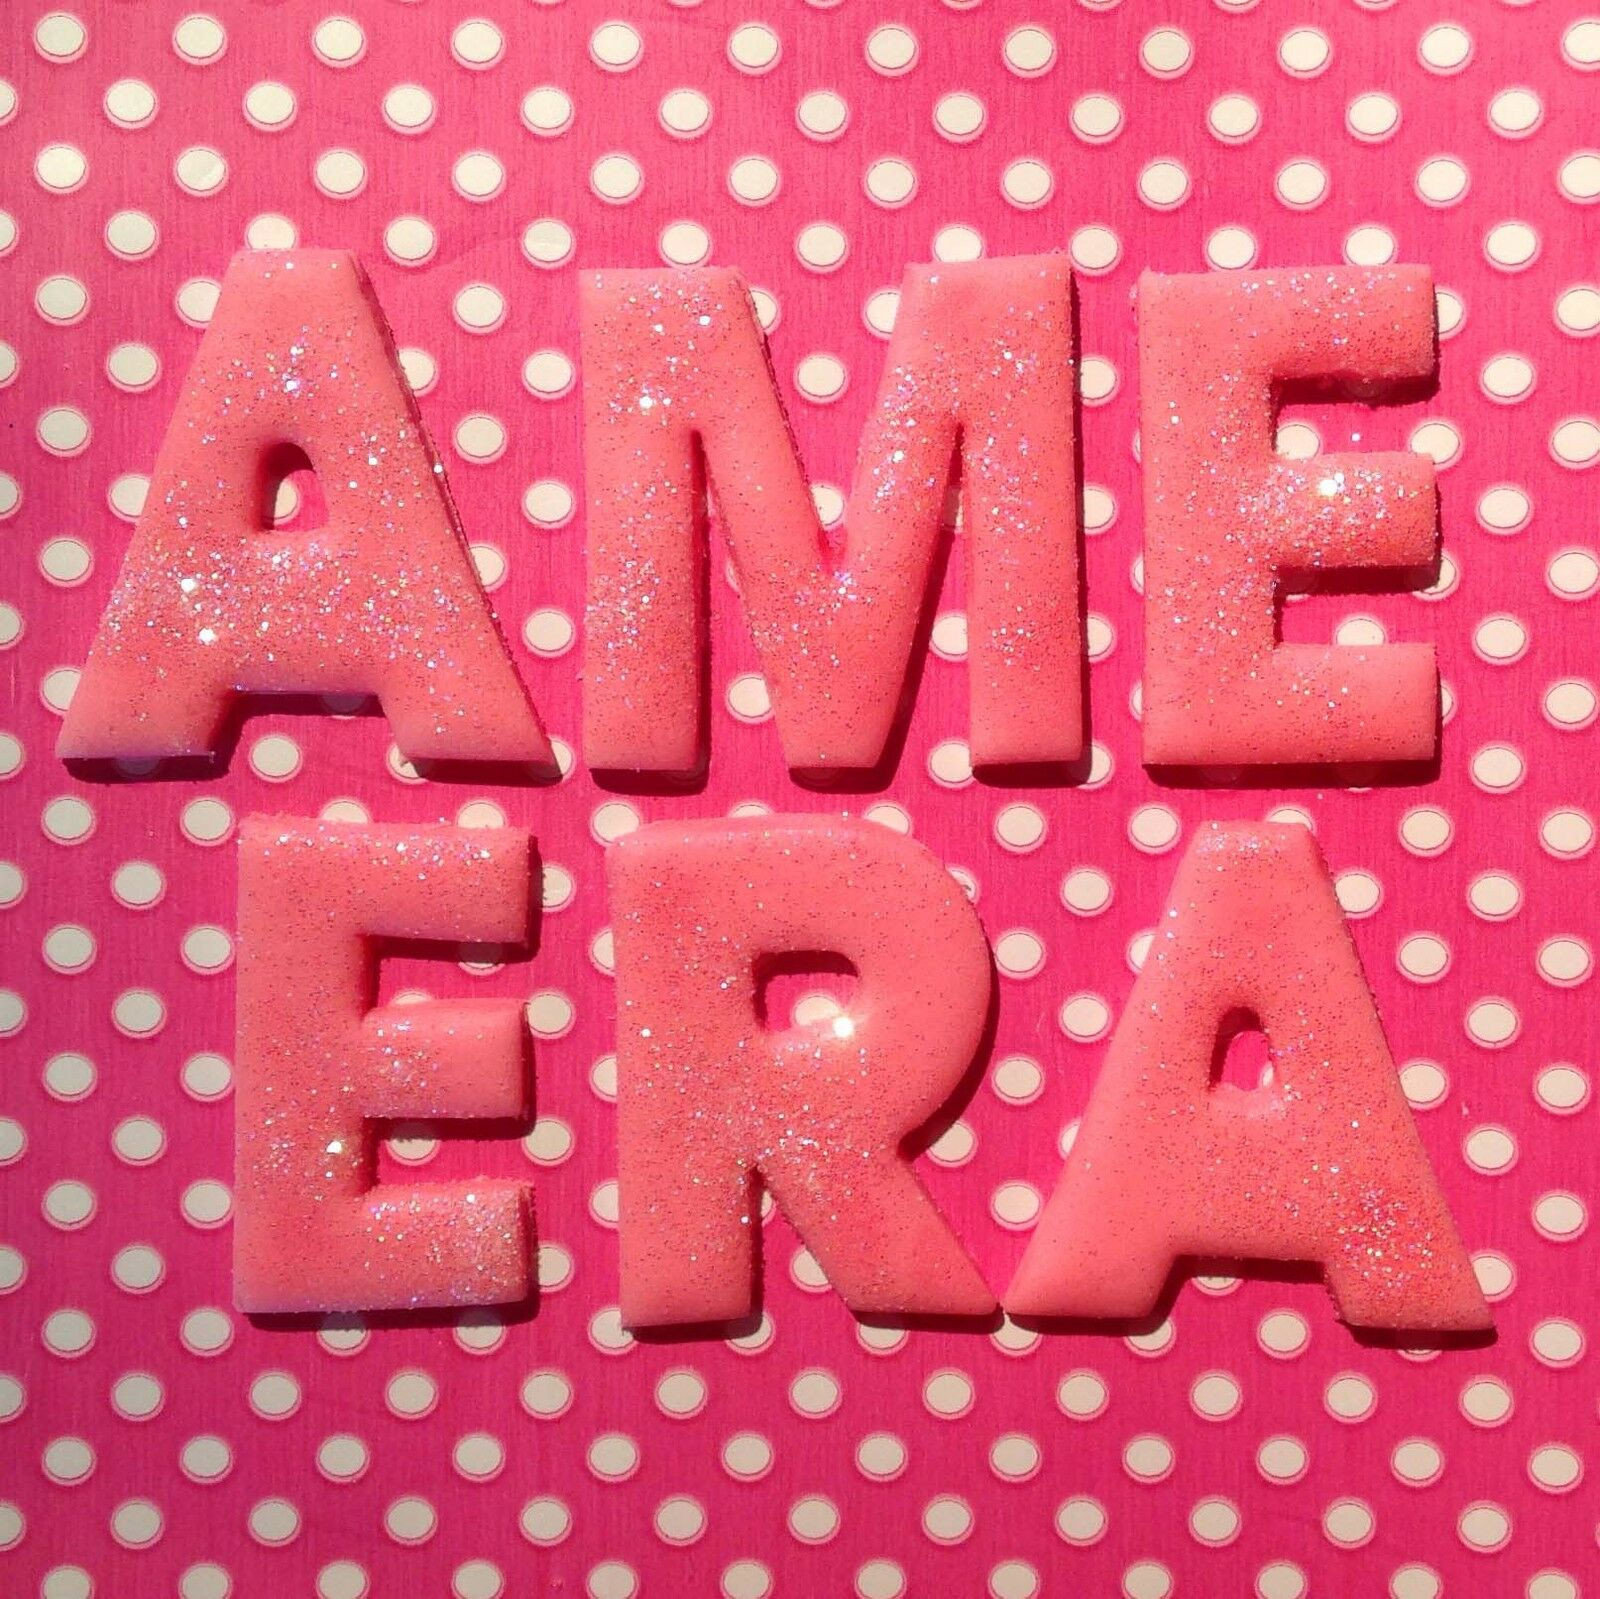 Fondant Edible LETTERS NUMBERS 4cm Cupcakes Cakes ...